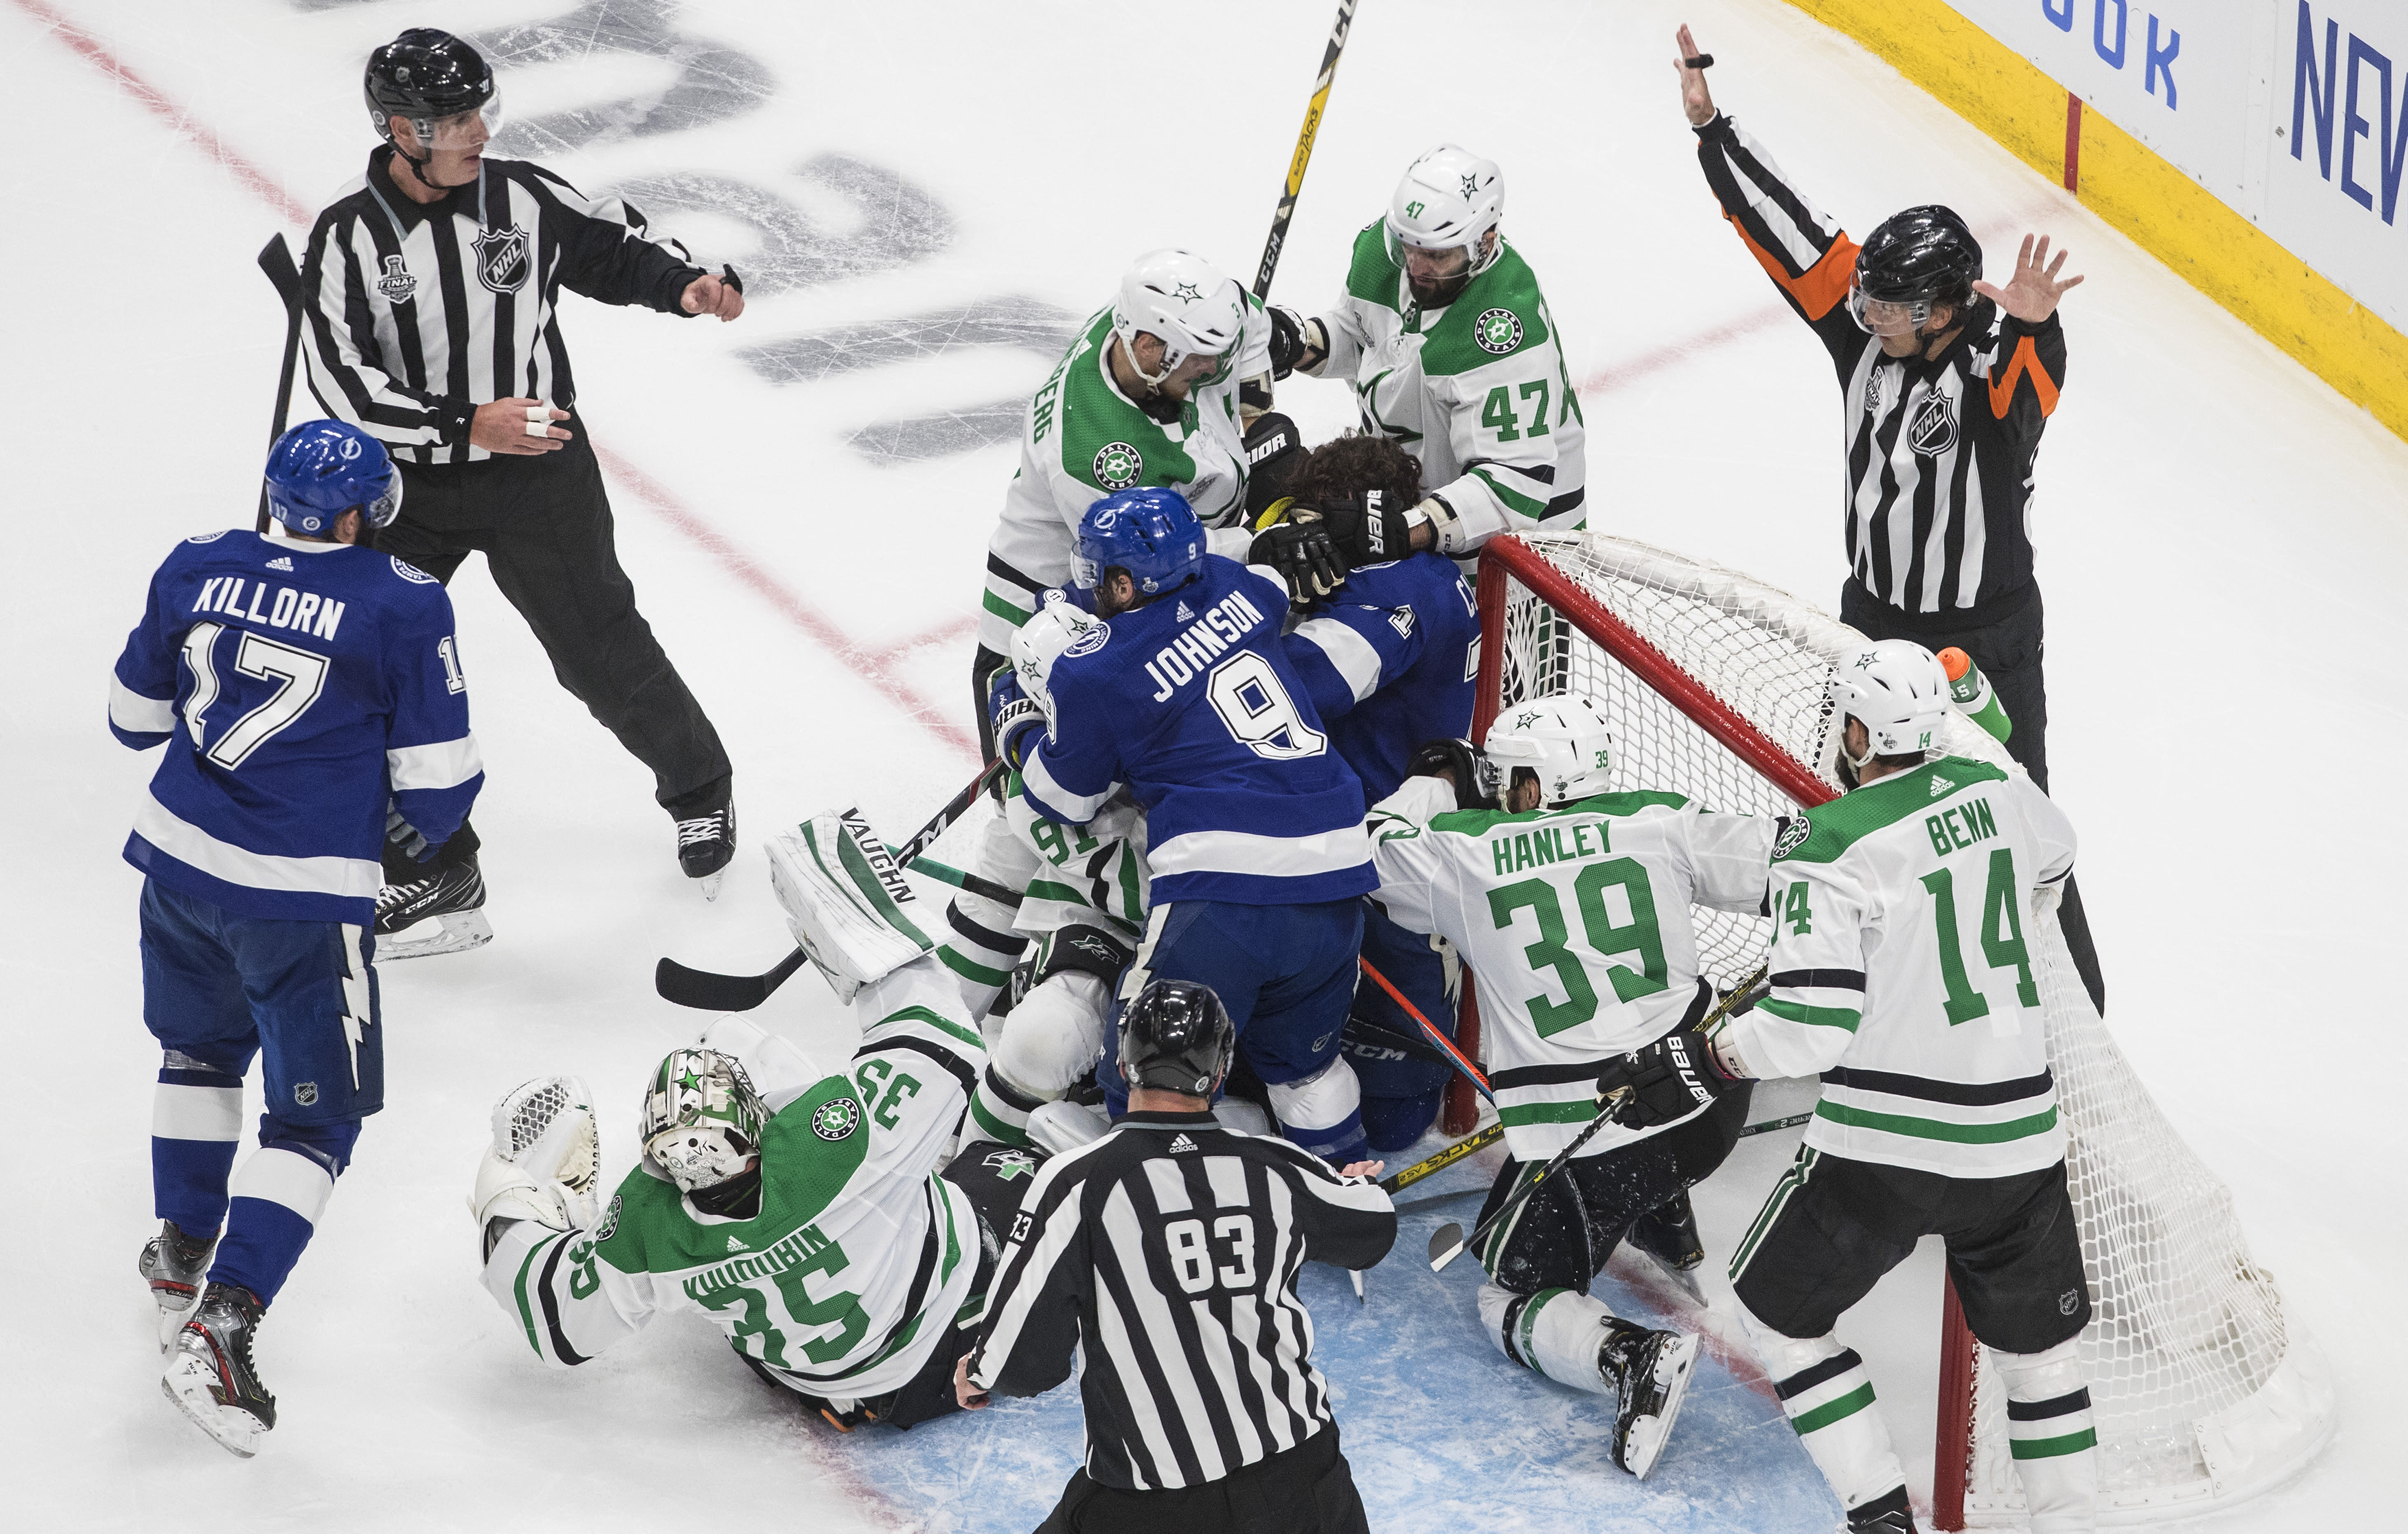 The referee stops play as the Dallas Stars and the Tampa Bay Lightning battle in the crease during second-period NHL Stanley Cup finals hockey action in Edmonton, Alberta, Saturday, Sept. 19, 2020. (Jason Franson/The Canadian Press via AP)